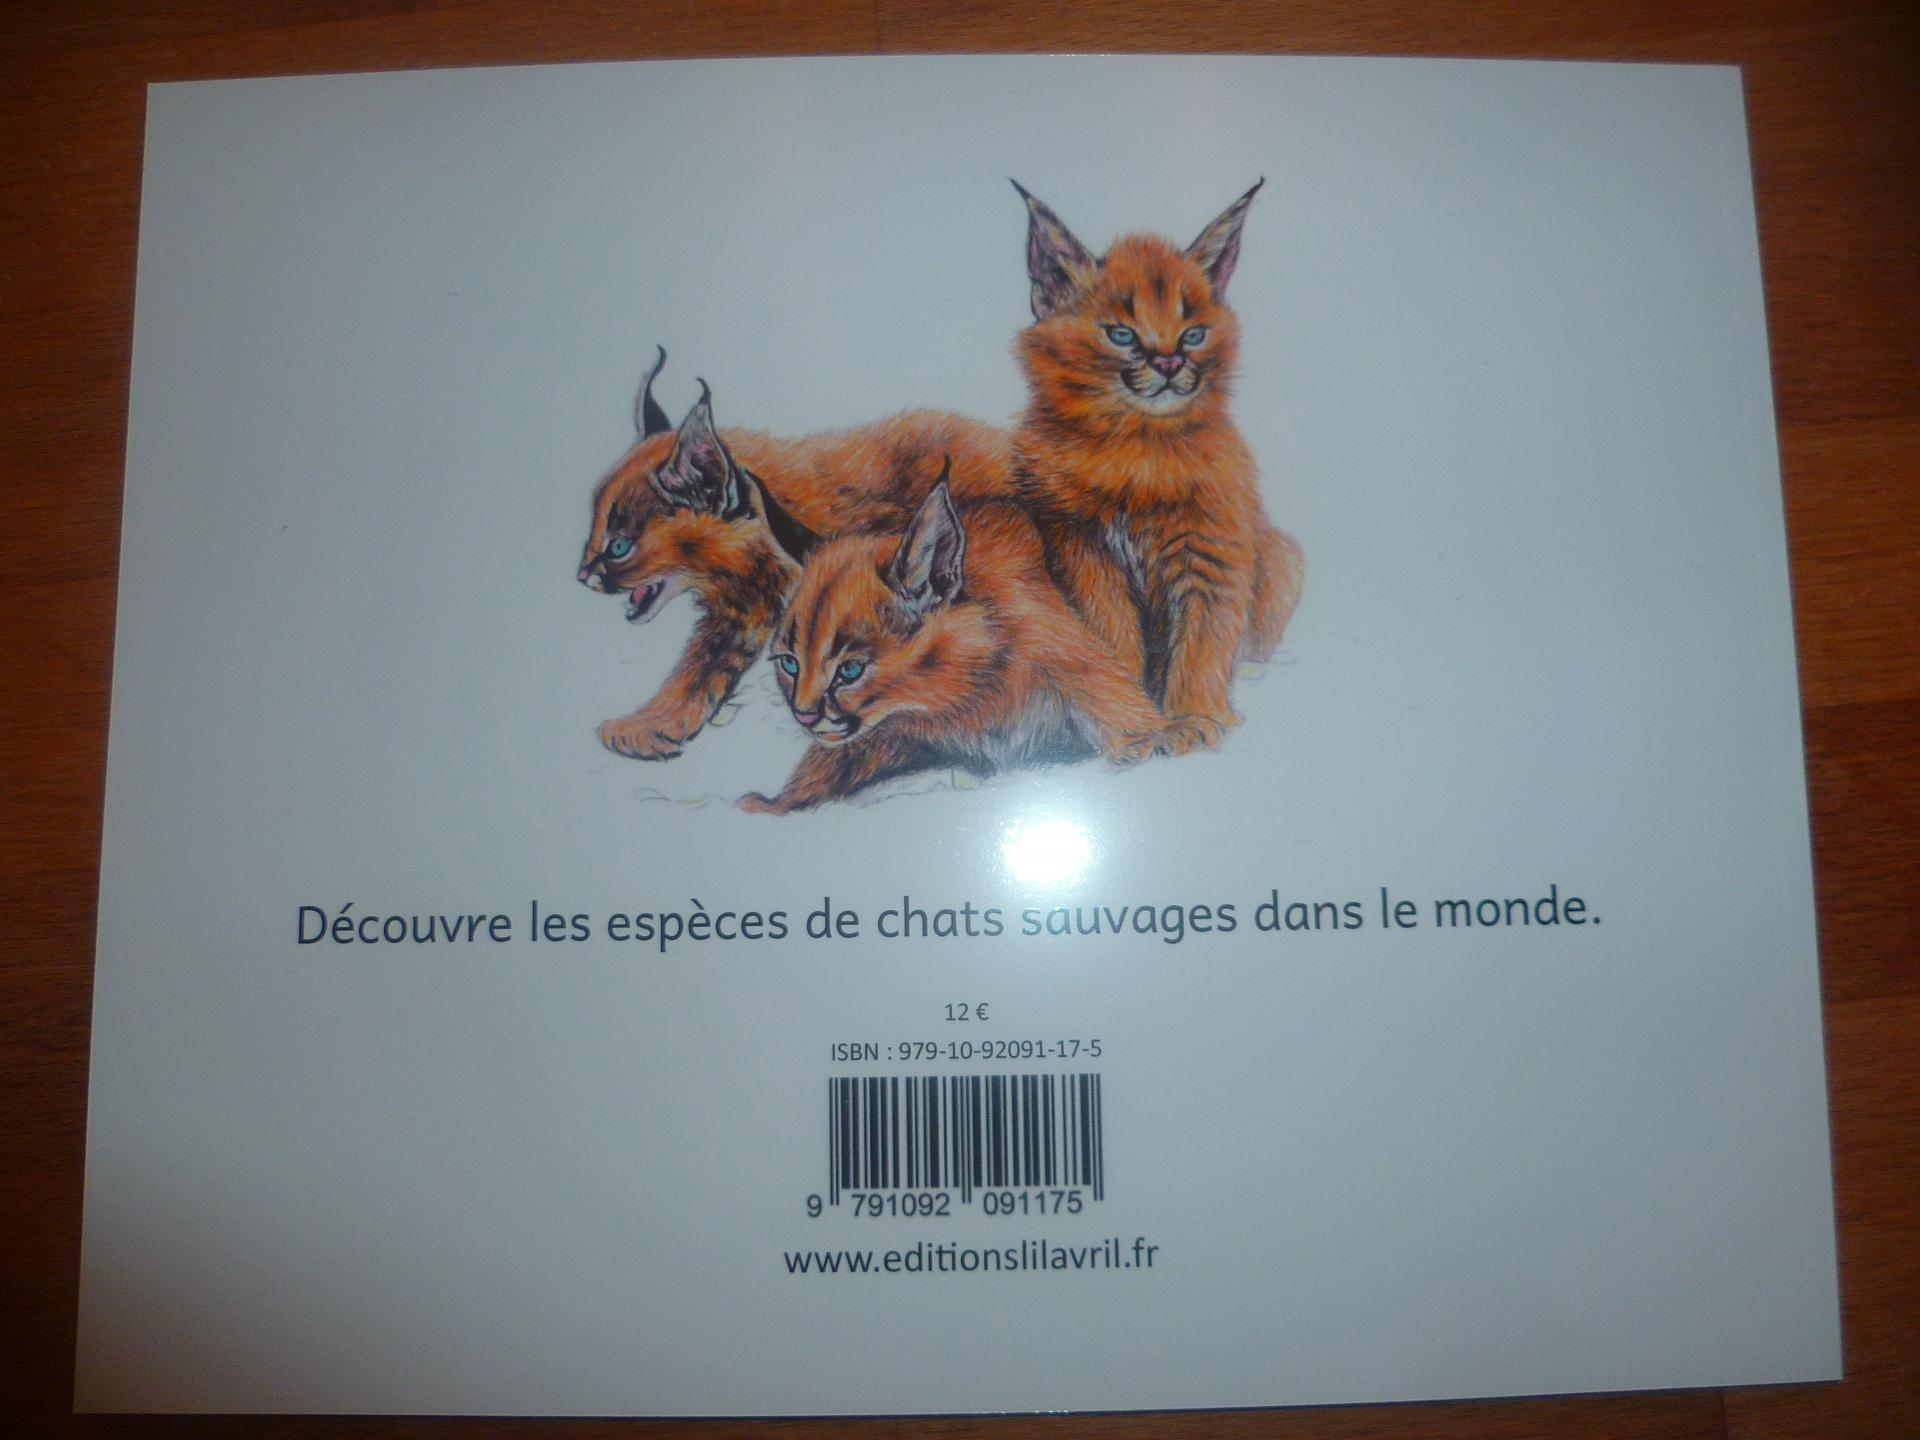 Chats sauvages